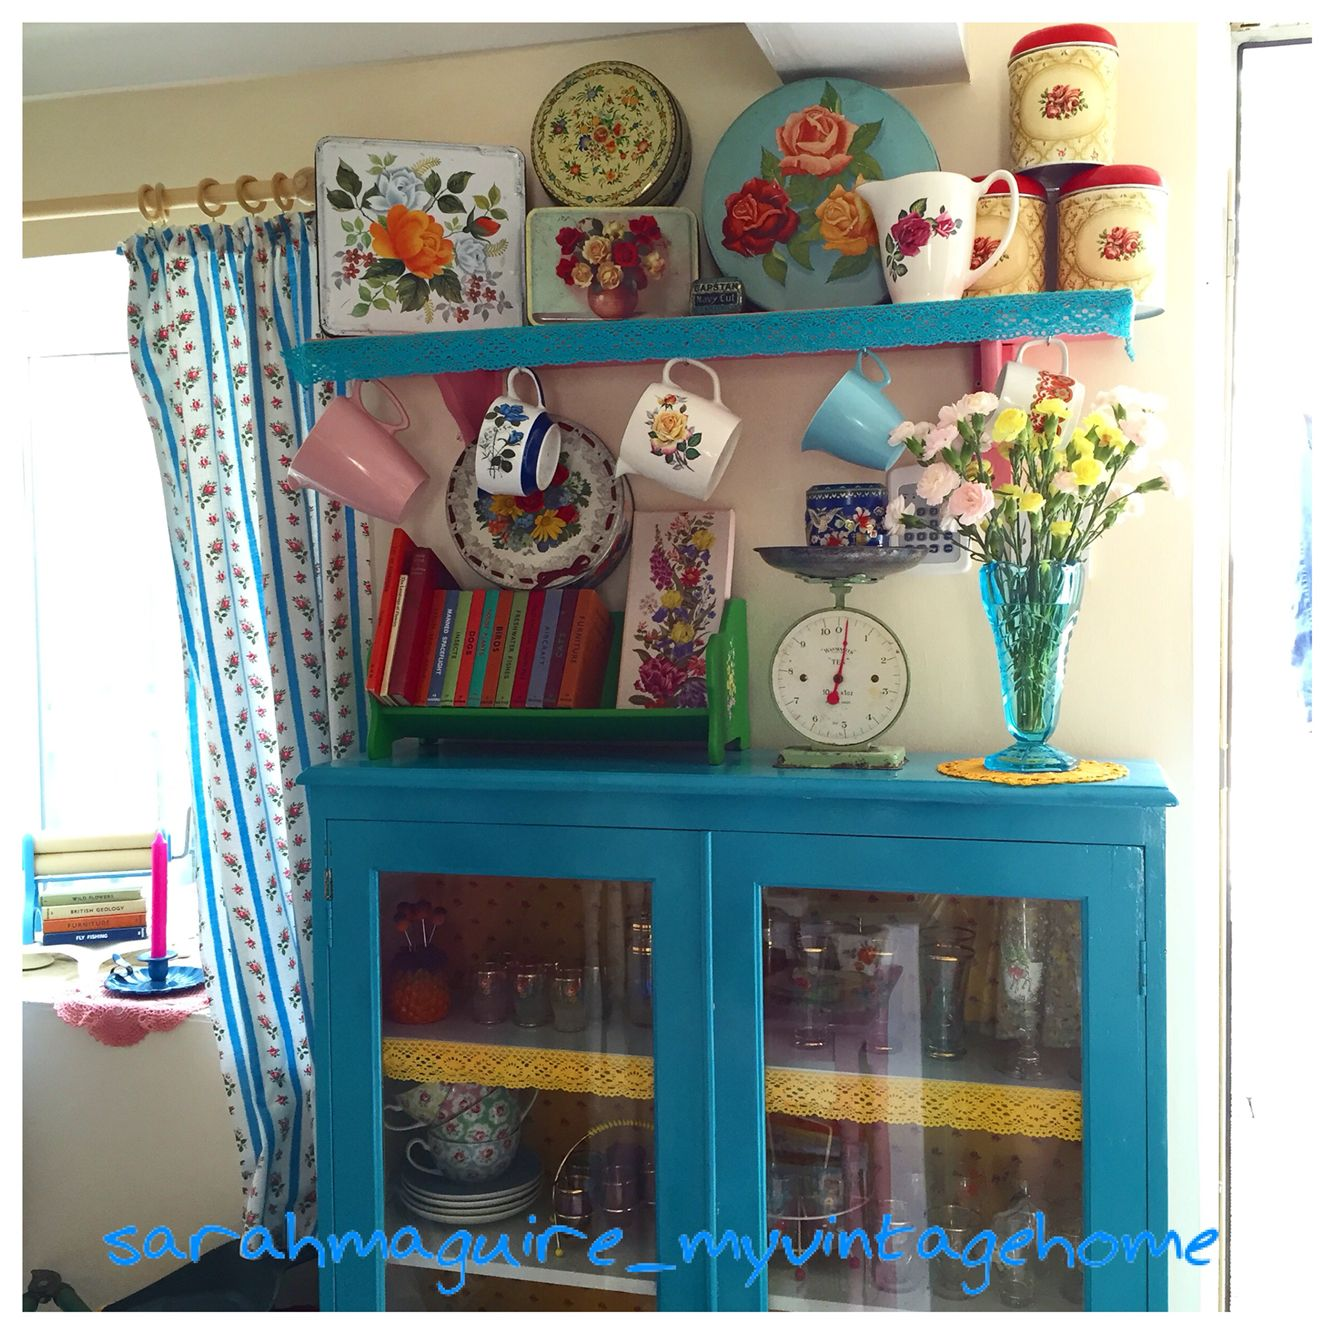 Pin by Karen Fitz on Colorful Decor | Pinterest | Granny chic ...